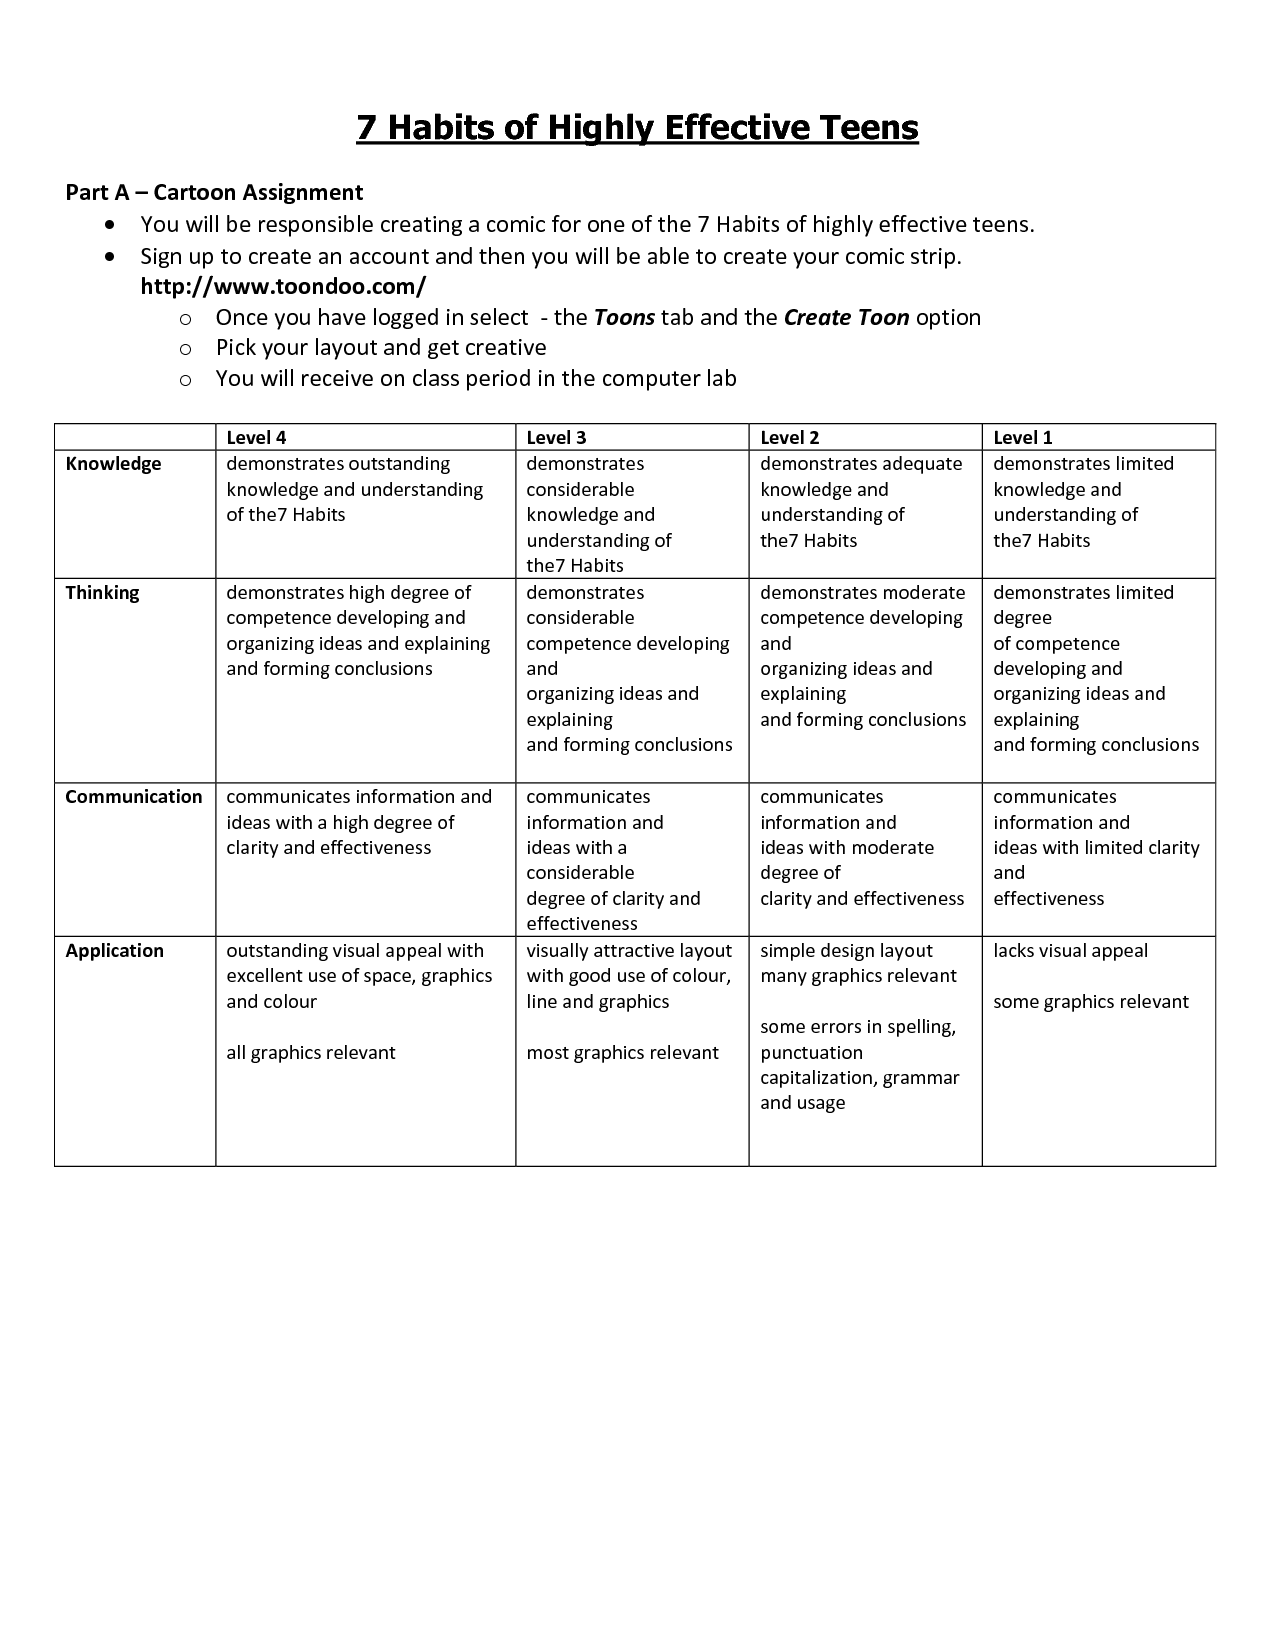 7 Habits Mission Statement Worksheet